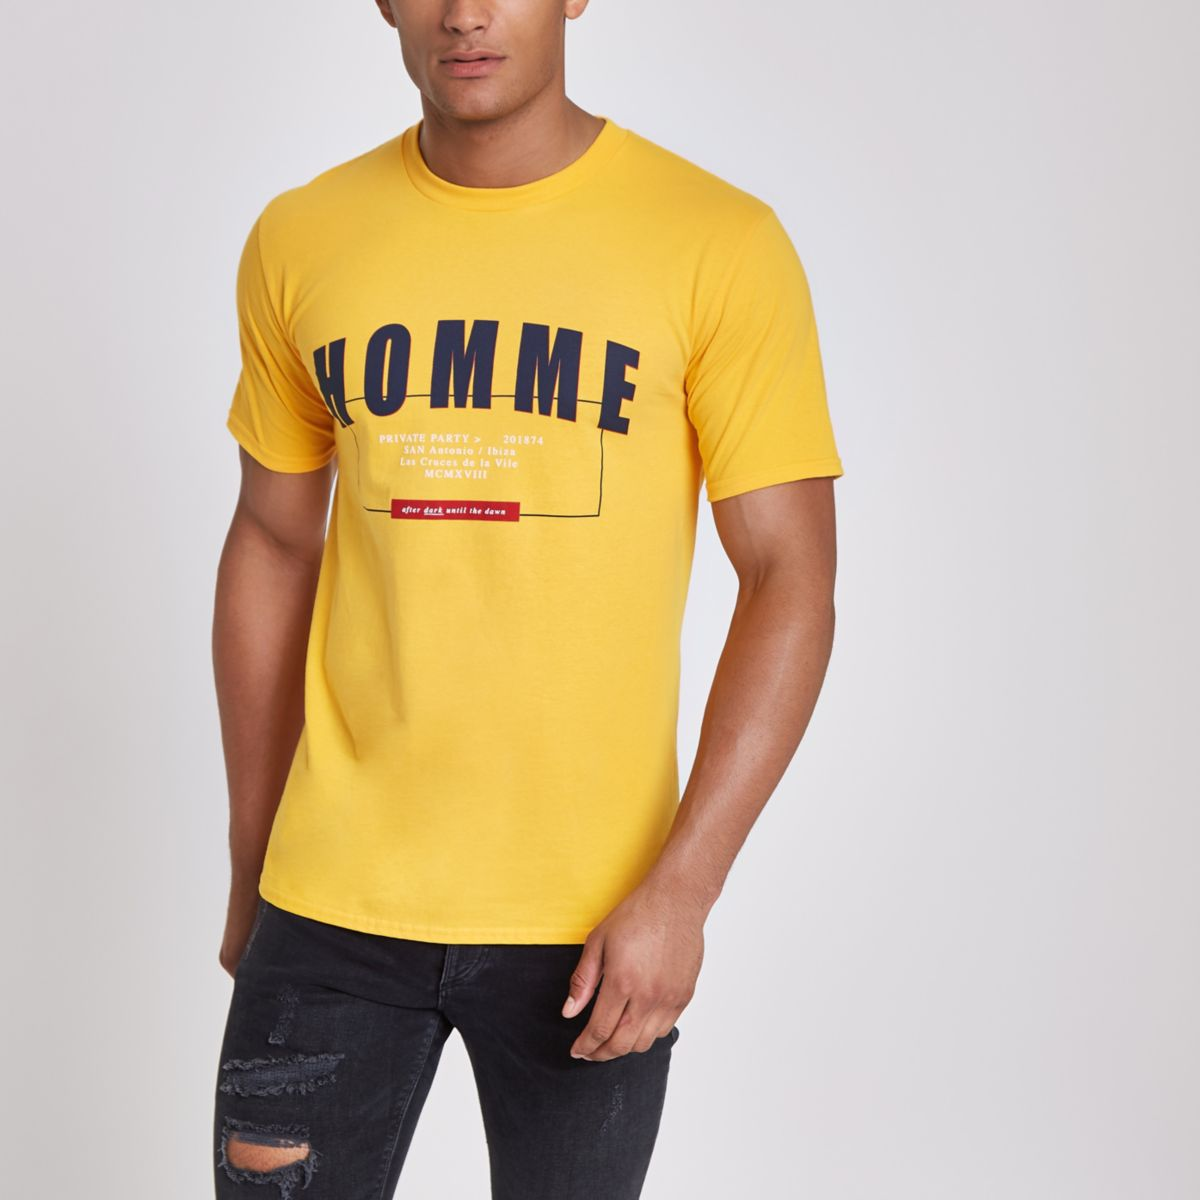 Yellow 'homme' short sleeve T-shirt